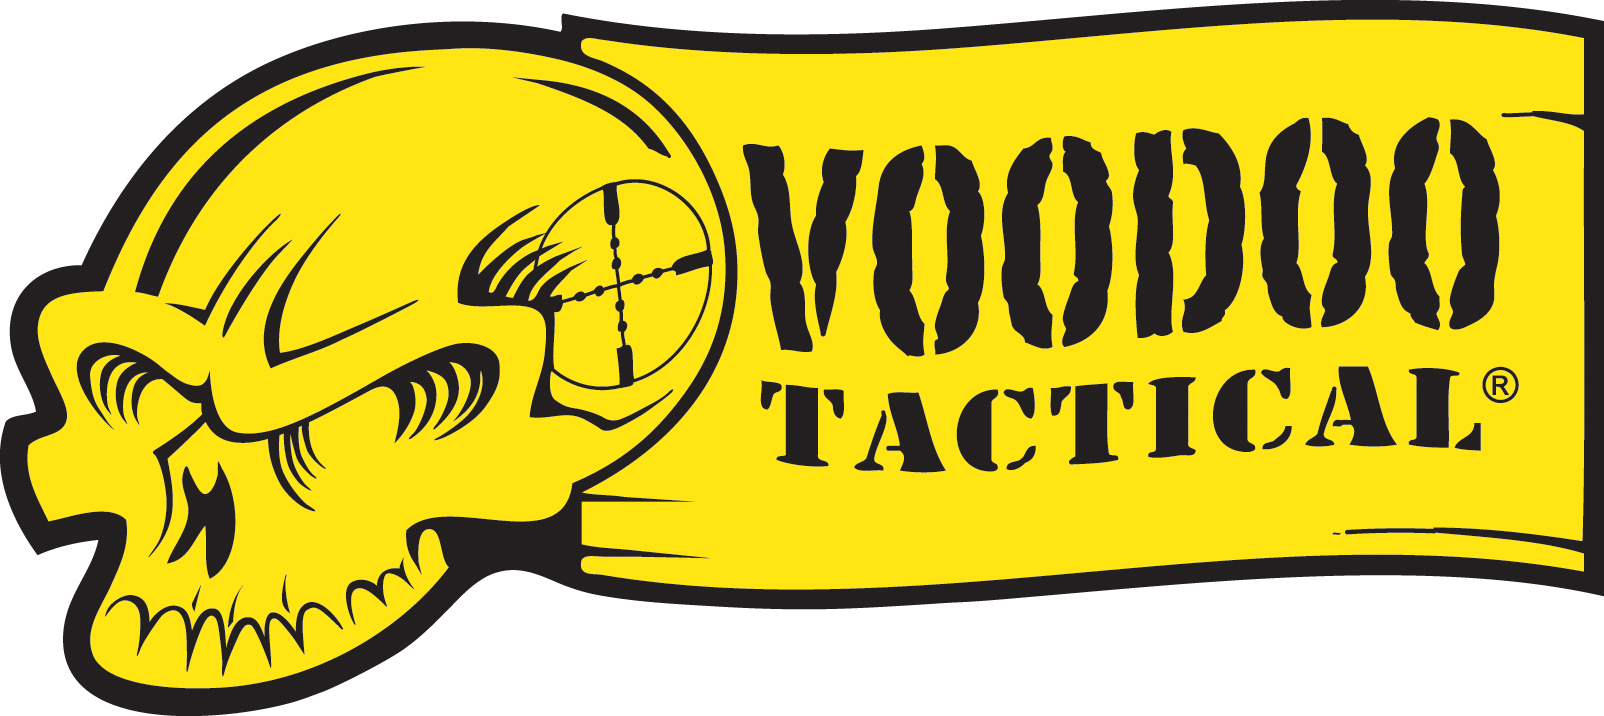 Voodoo Tactical